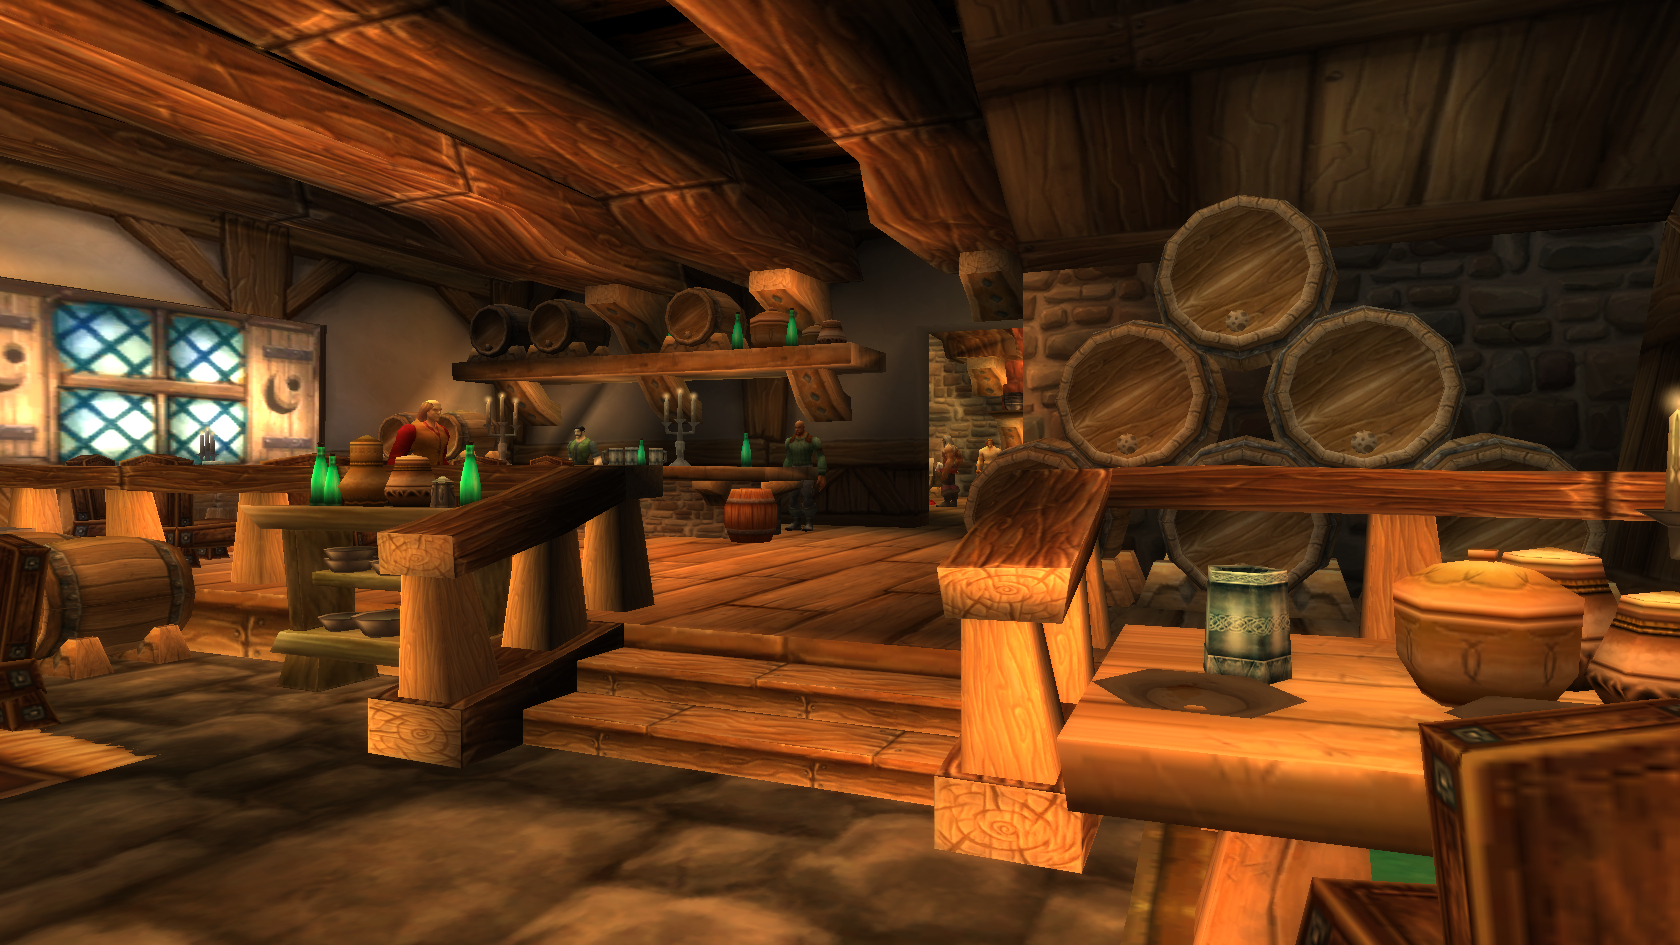 World of warcraft tavern